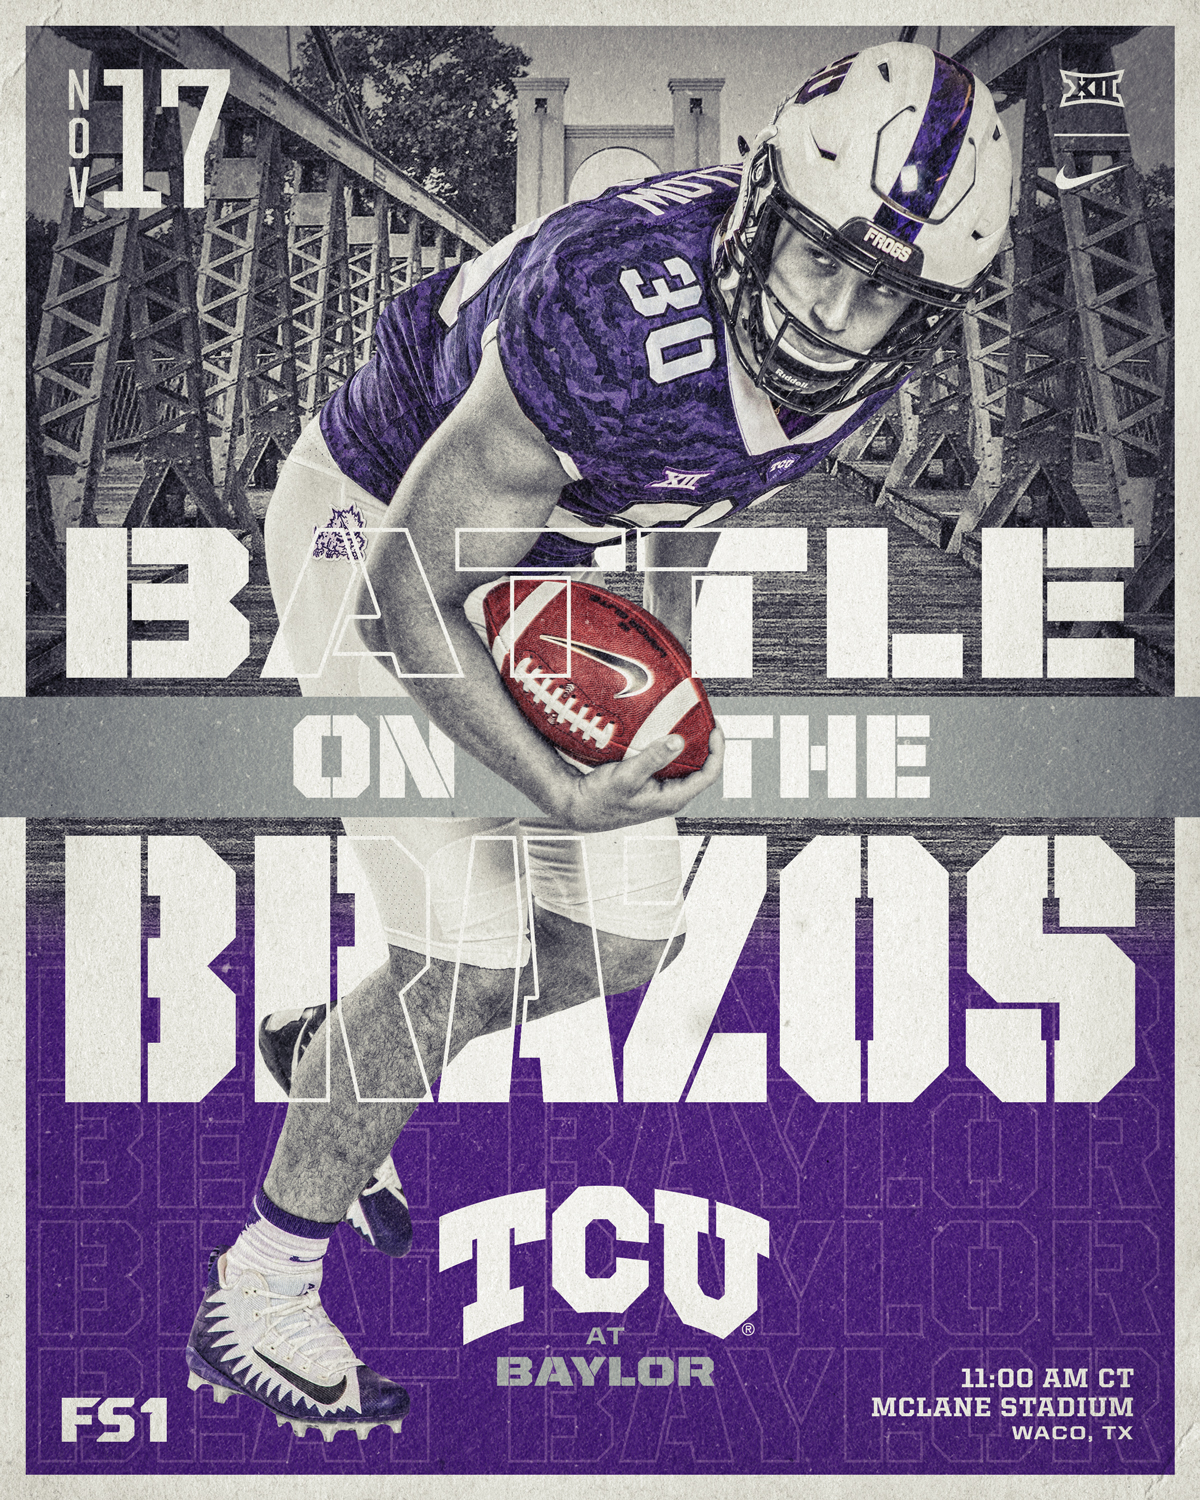 TCU vs Baylor